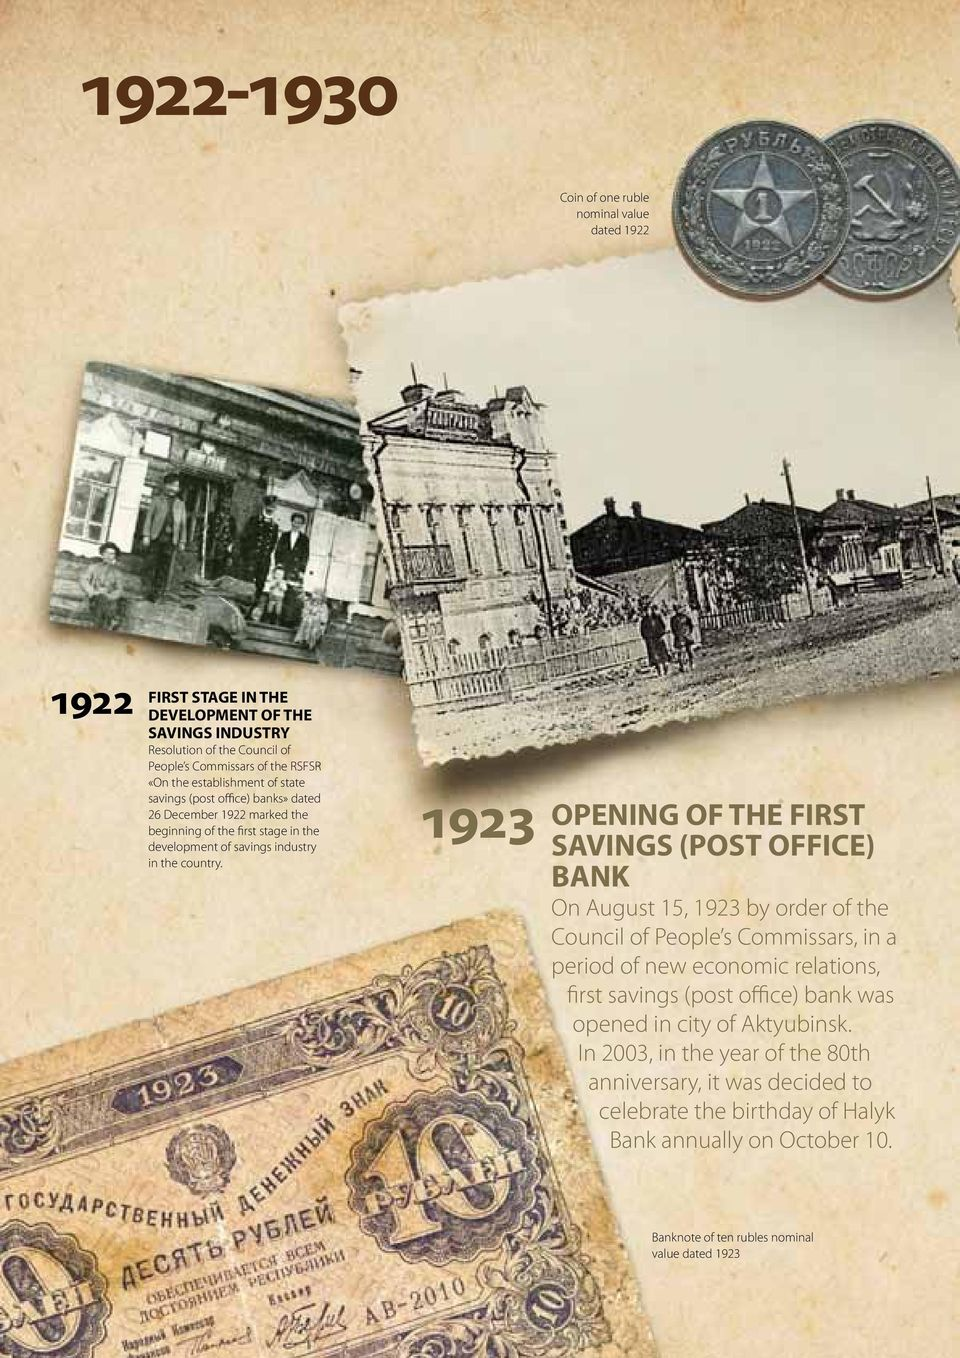 1923 OPENING OF THE FIRST SAVINGS (POST OFFICE) BANK On August 15, 1923 by order of the Council of People s Commissars, in a period of new economic relations, first savings (post office)